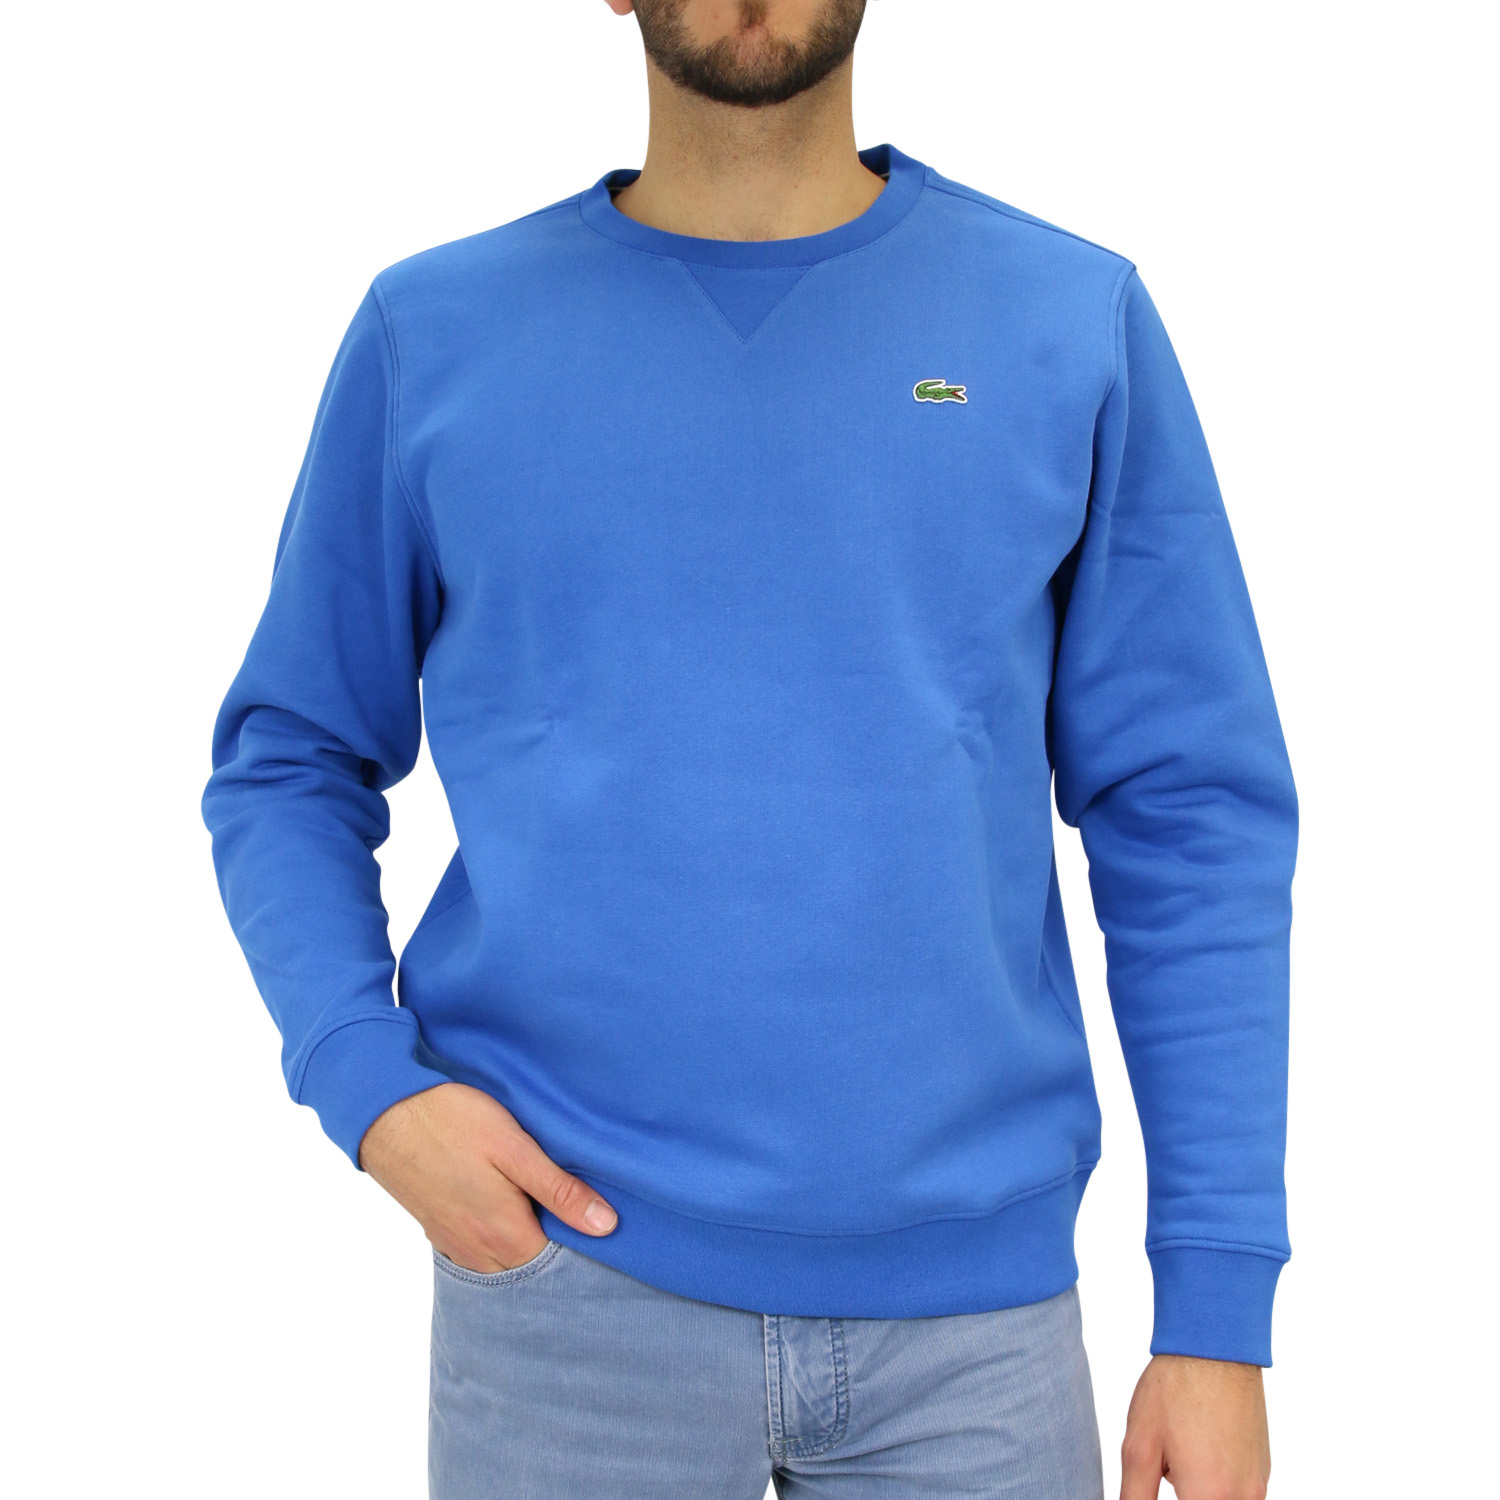 lacoste sport sweatshirt pullover rundhals blau sh7613 skg. Black Bedroom Furniture Sets. Home Design Ideas